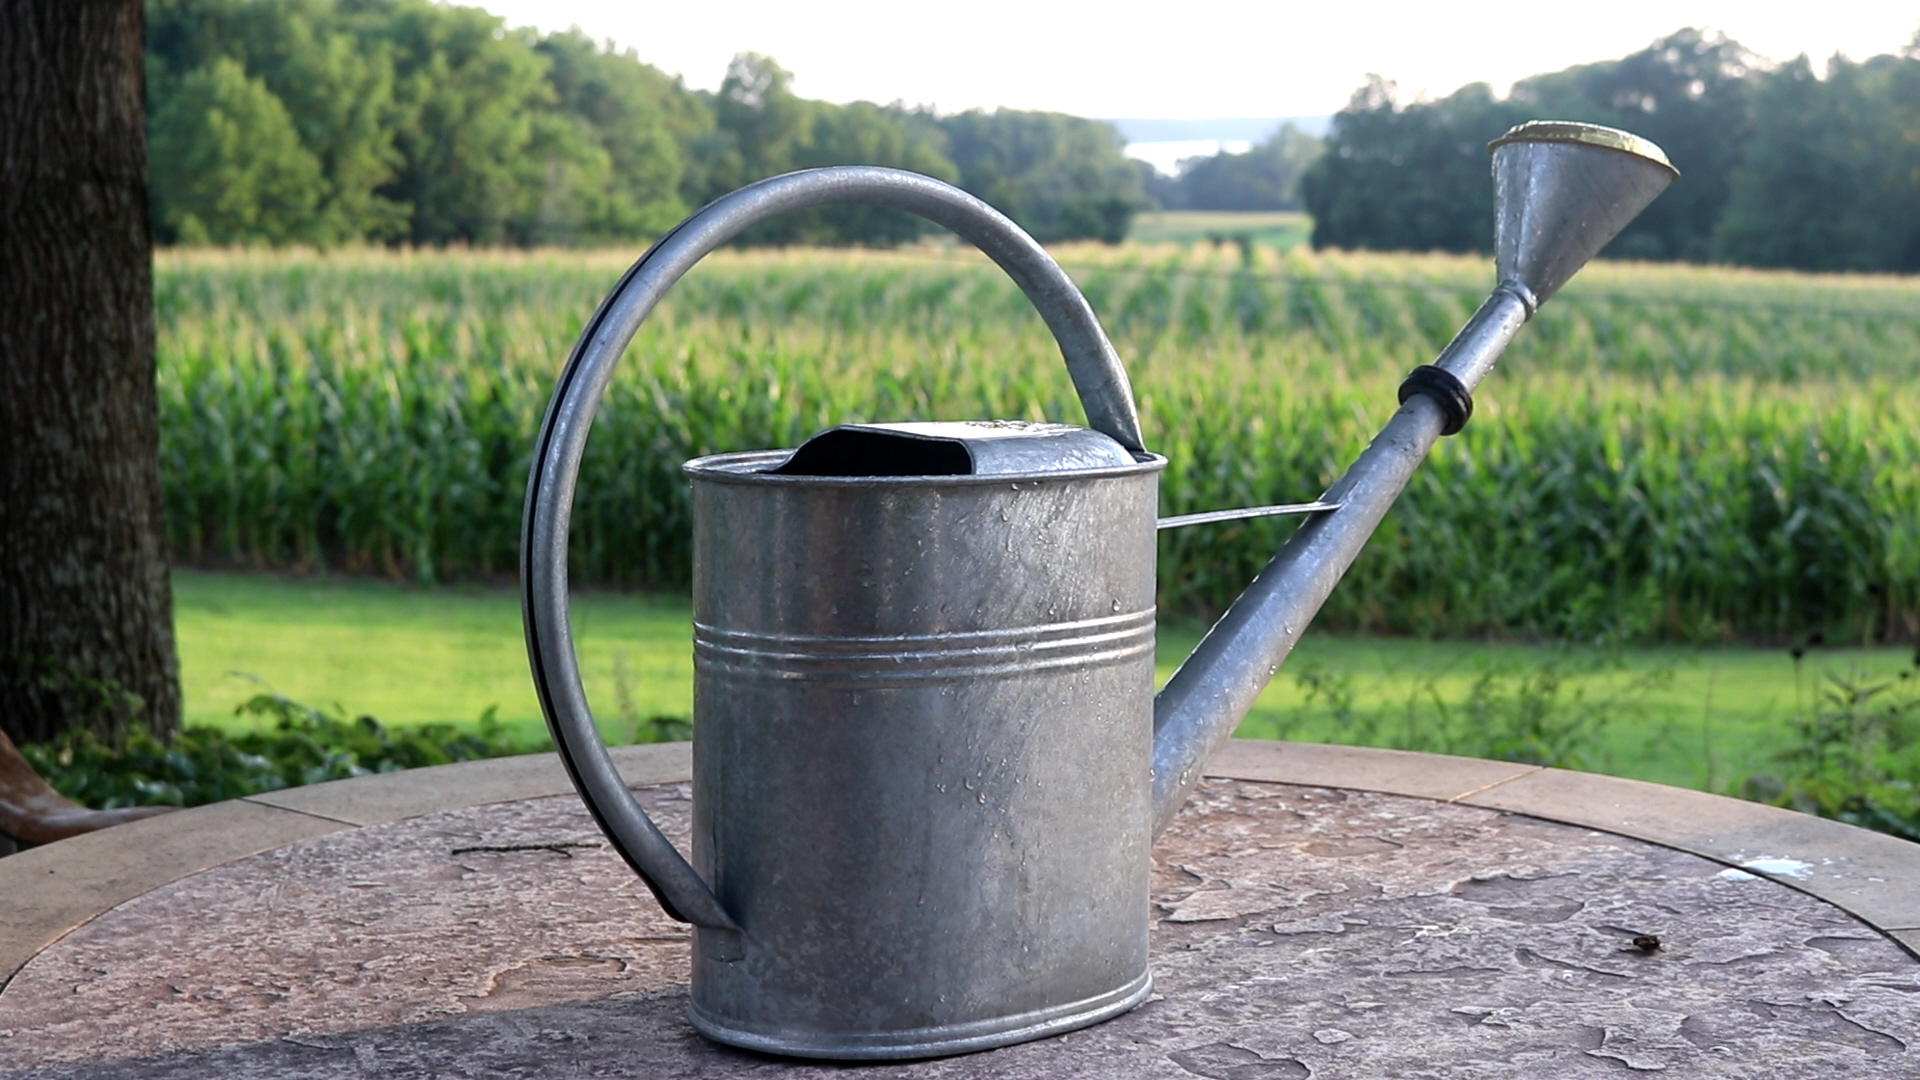 Grote Gieter Large Galvanized Watering Can 2 3 Gallon Garden Artisans